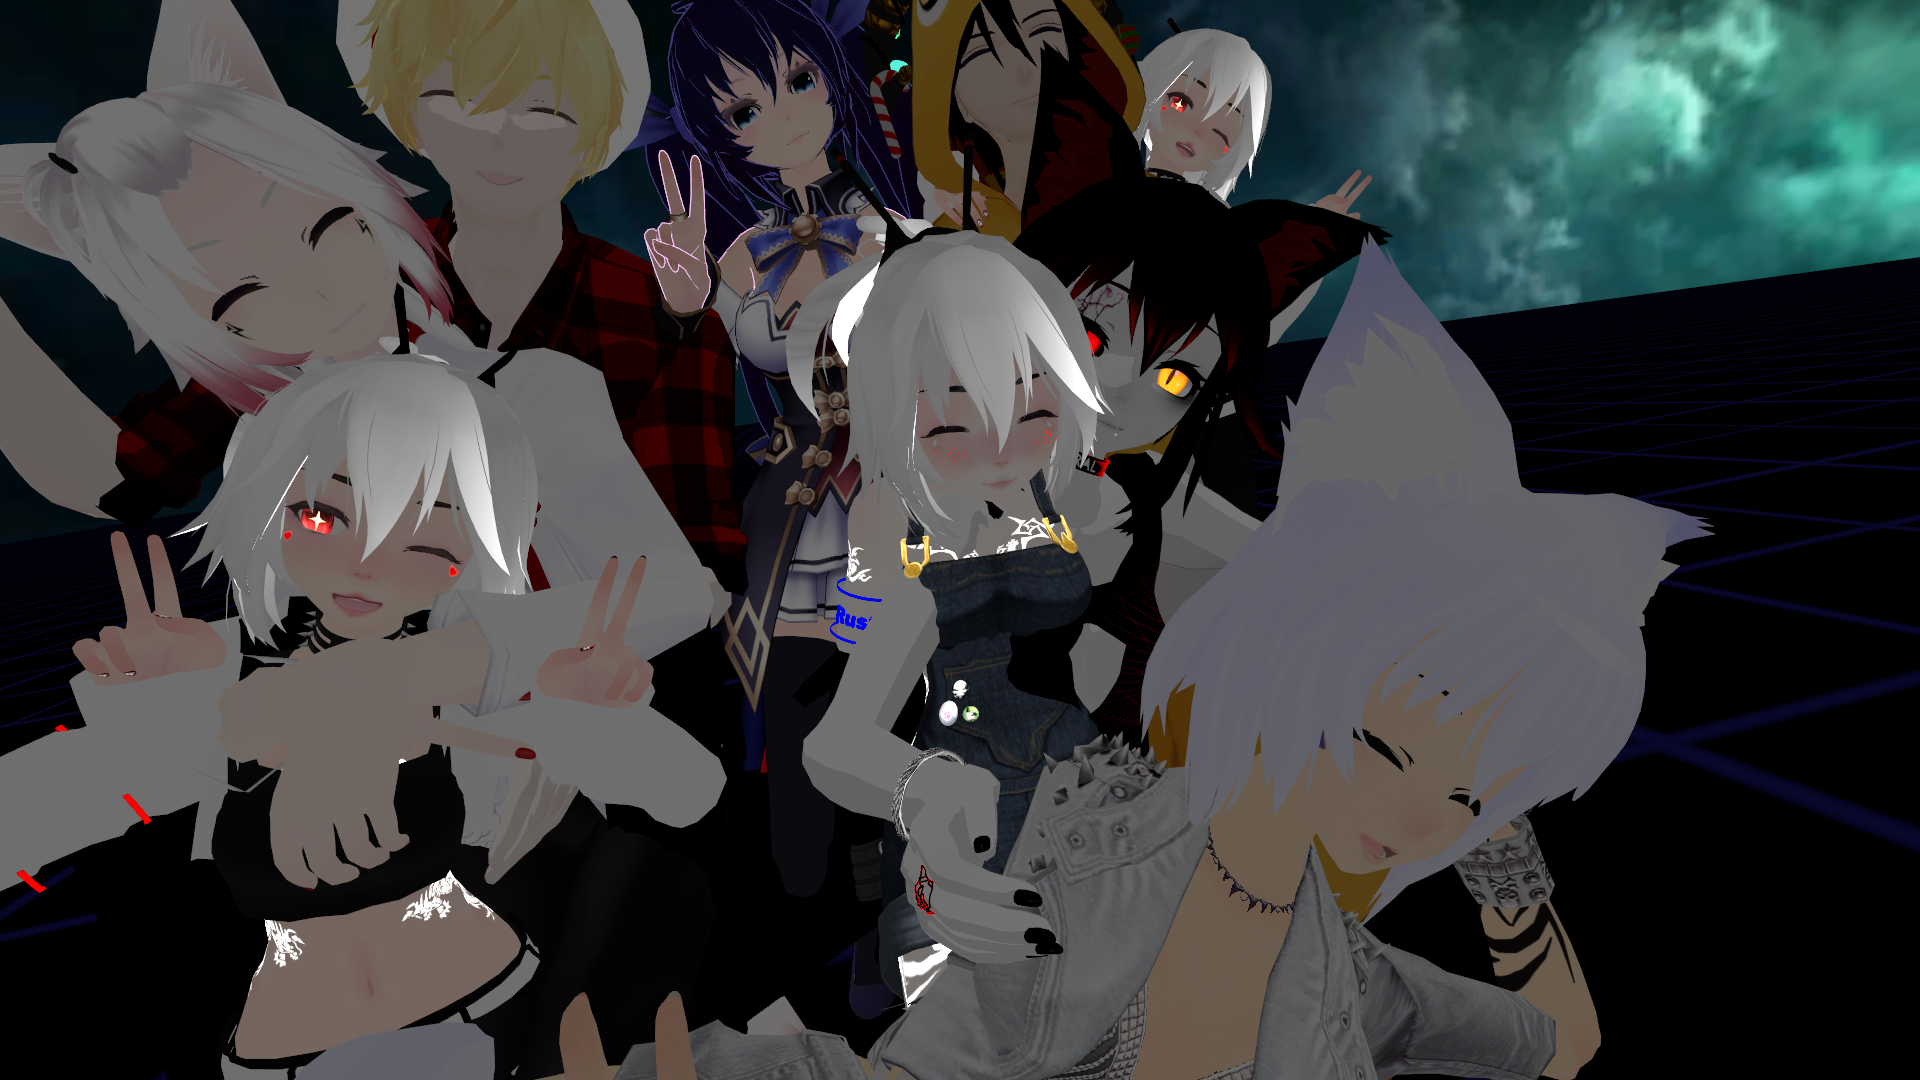 [Image: VRChat_1920x1080_2018-12-26_18-00-41.411.png]